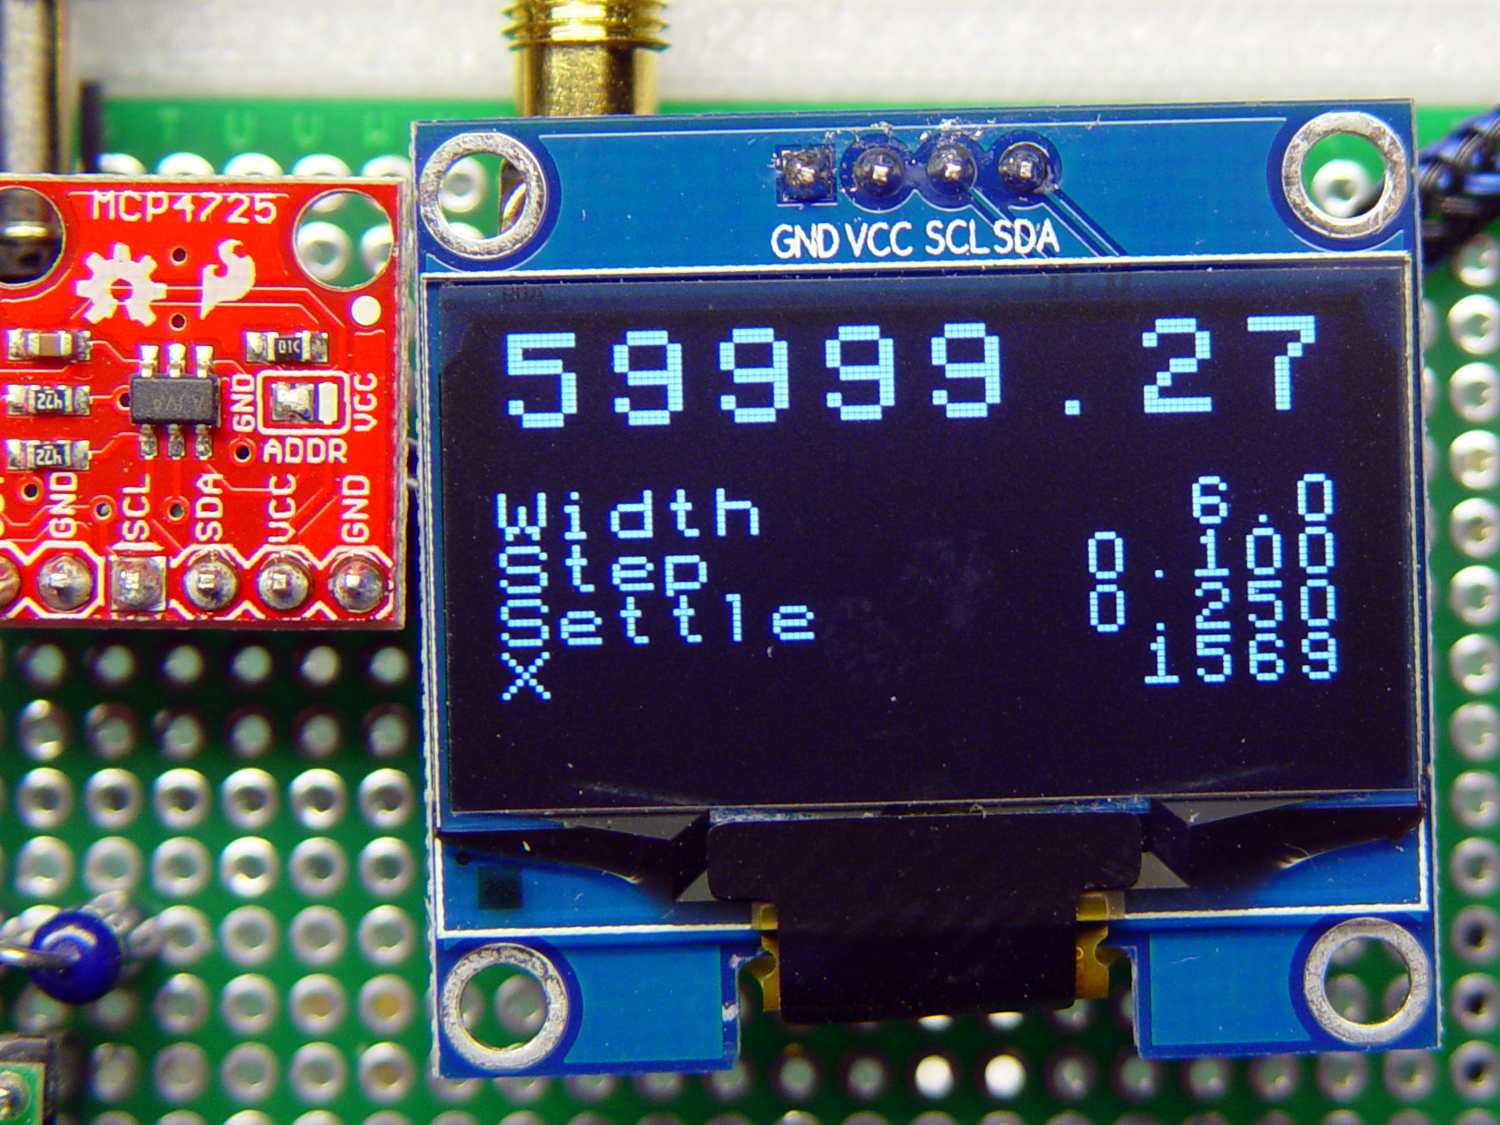 12864 Oled Display Ic Timings The Smell Of Molten Projects In Simple Crystal Tester White 128x64